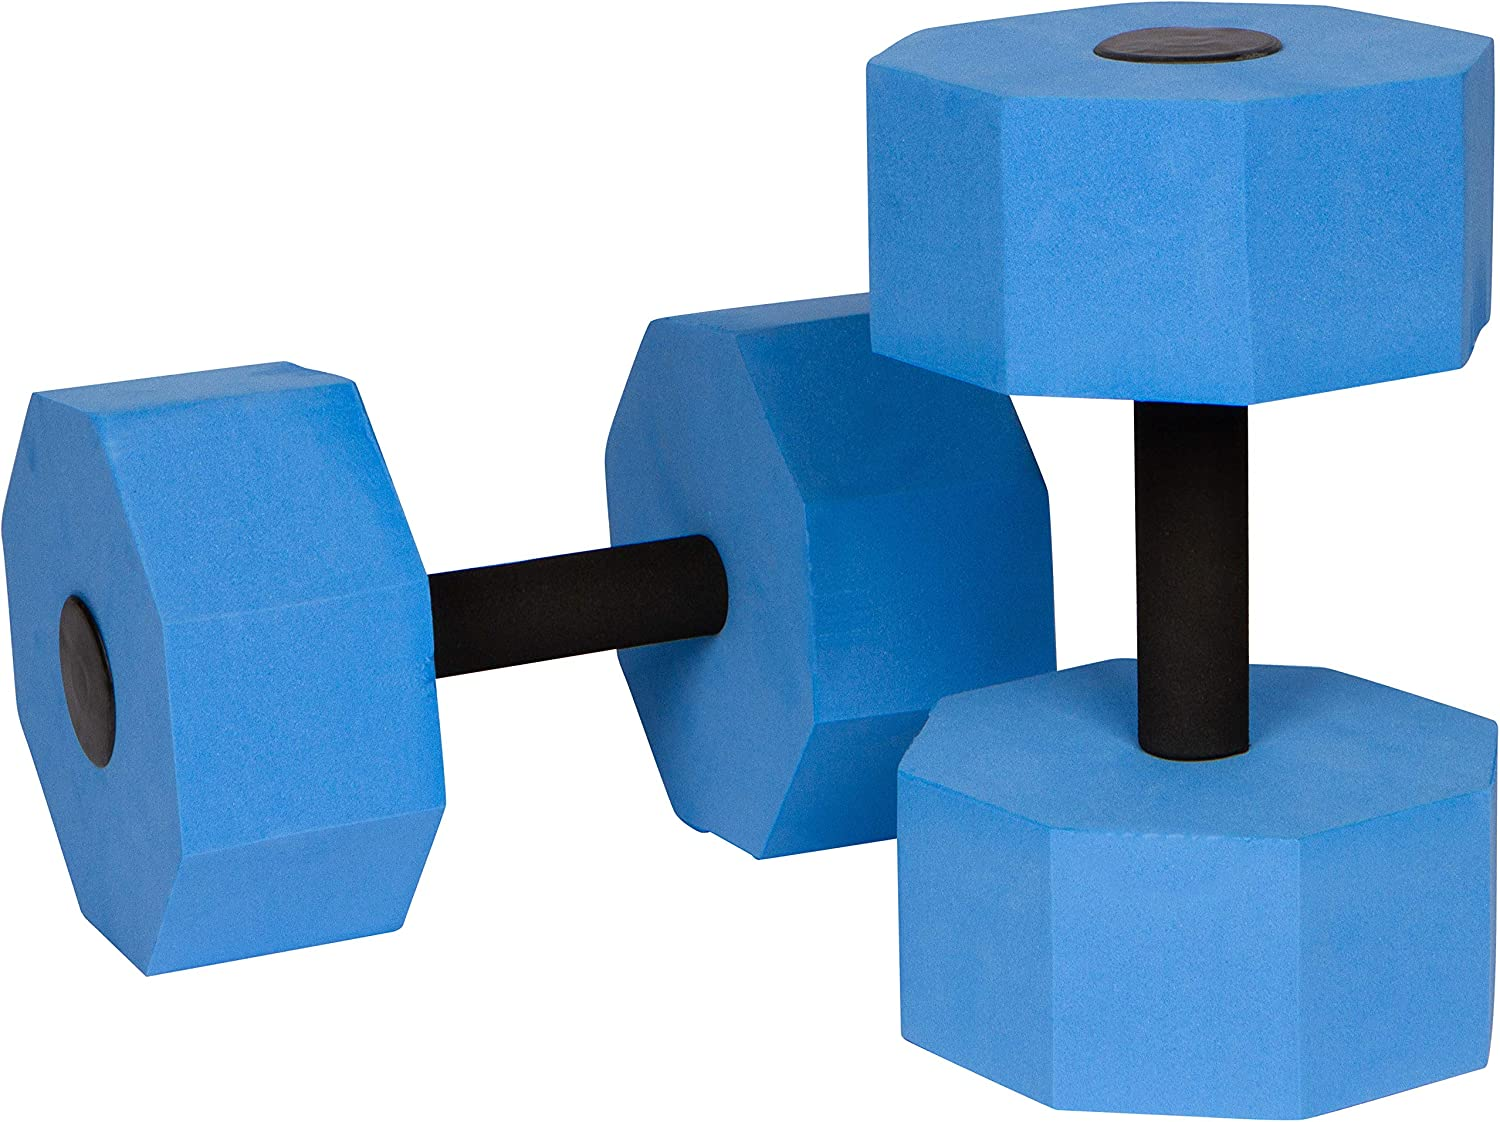 Trademark Innovations Aquatic Our shop OFFers the best service Exercise Low price Dumbells of Foam - Set 2